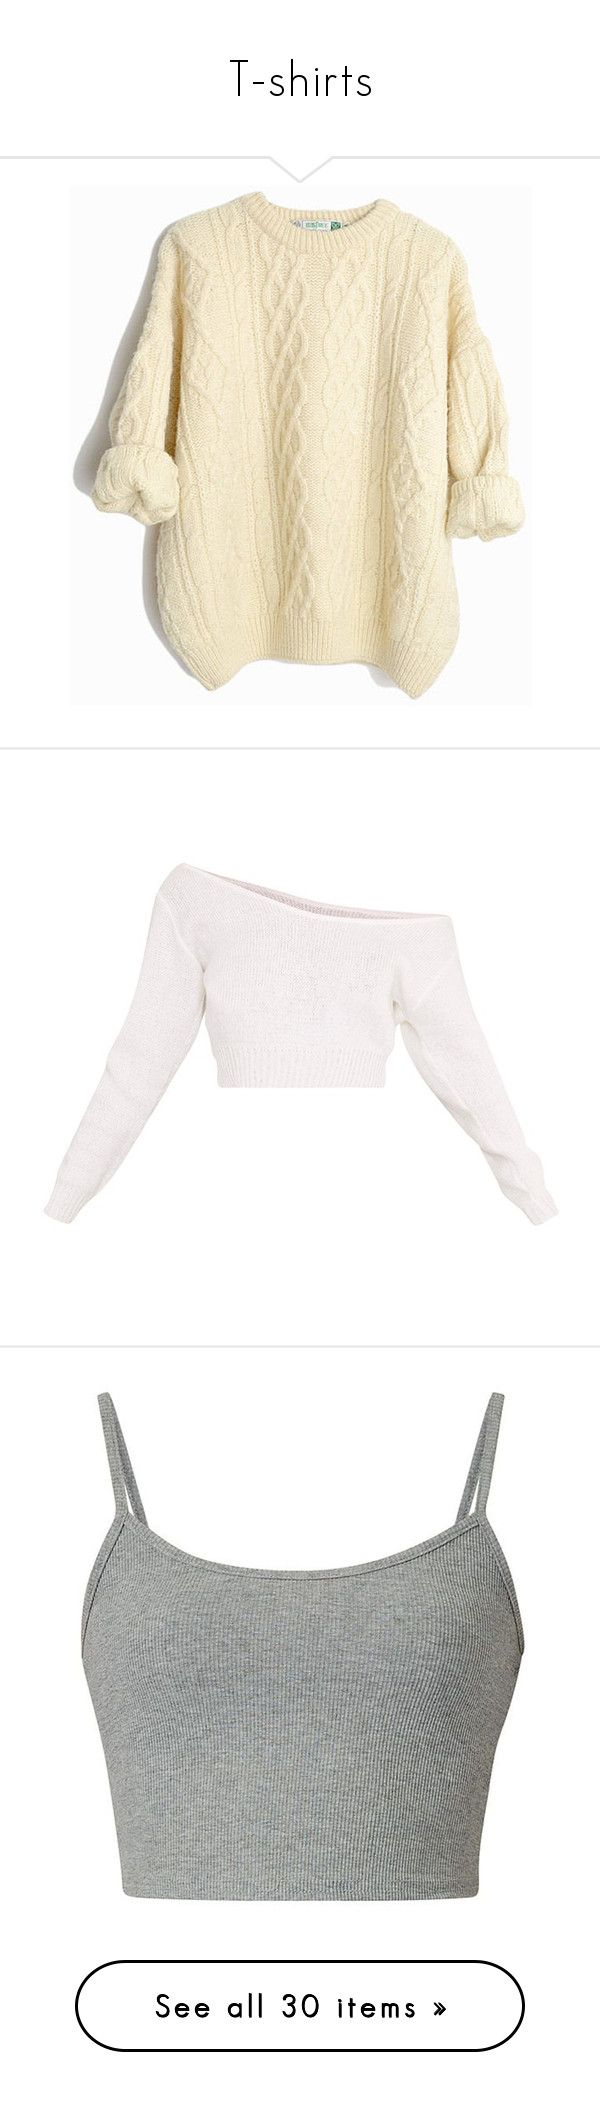 """T-shirts"" by styles-of-outfits ❤ liked on Polyvore featuring tops, sweaters, aran sweater, wool sweaters, beige cable knit sweater, wool cable knit sweater, aran wool sweaters, crop tops, shirts and crop"